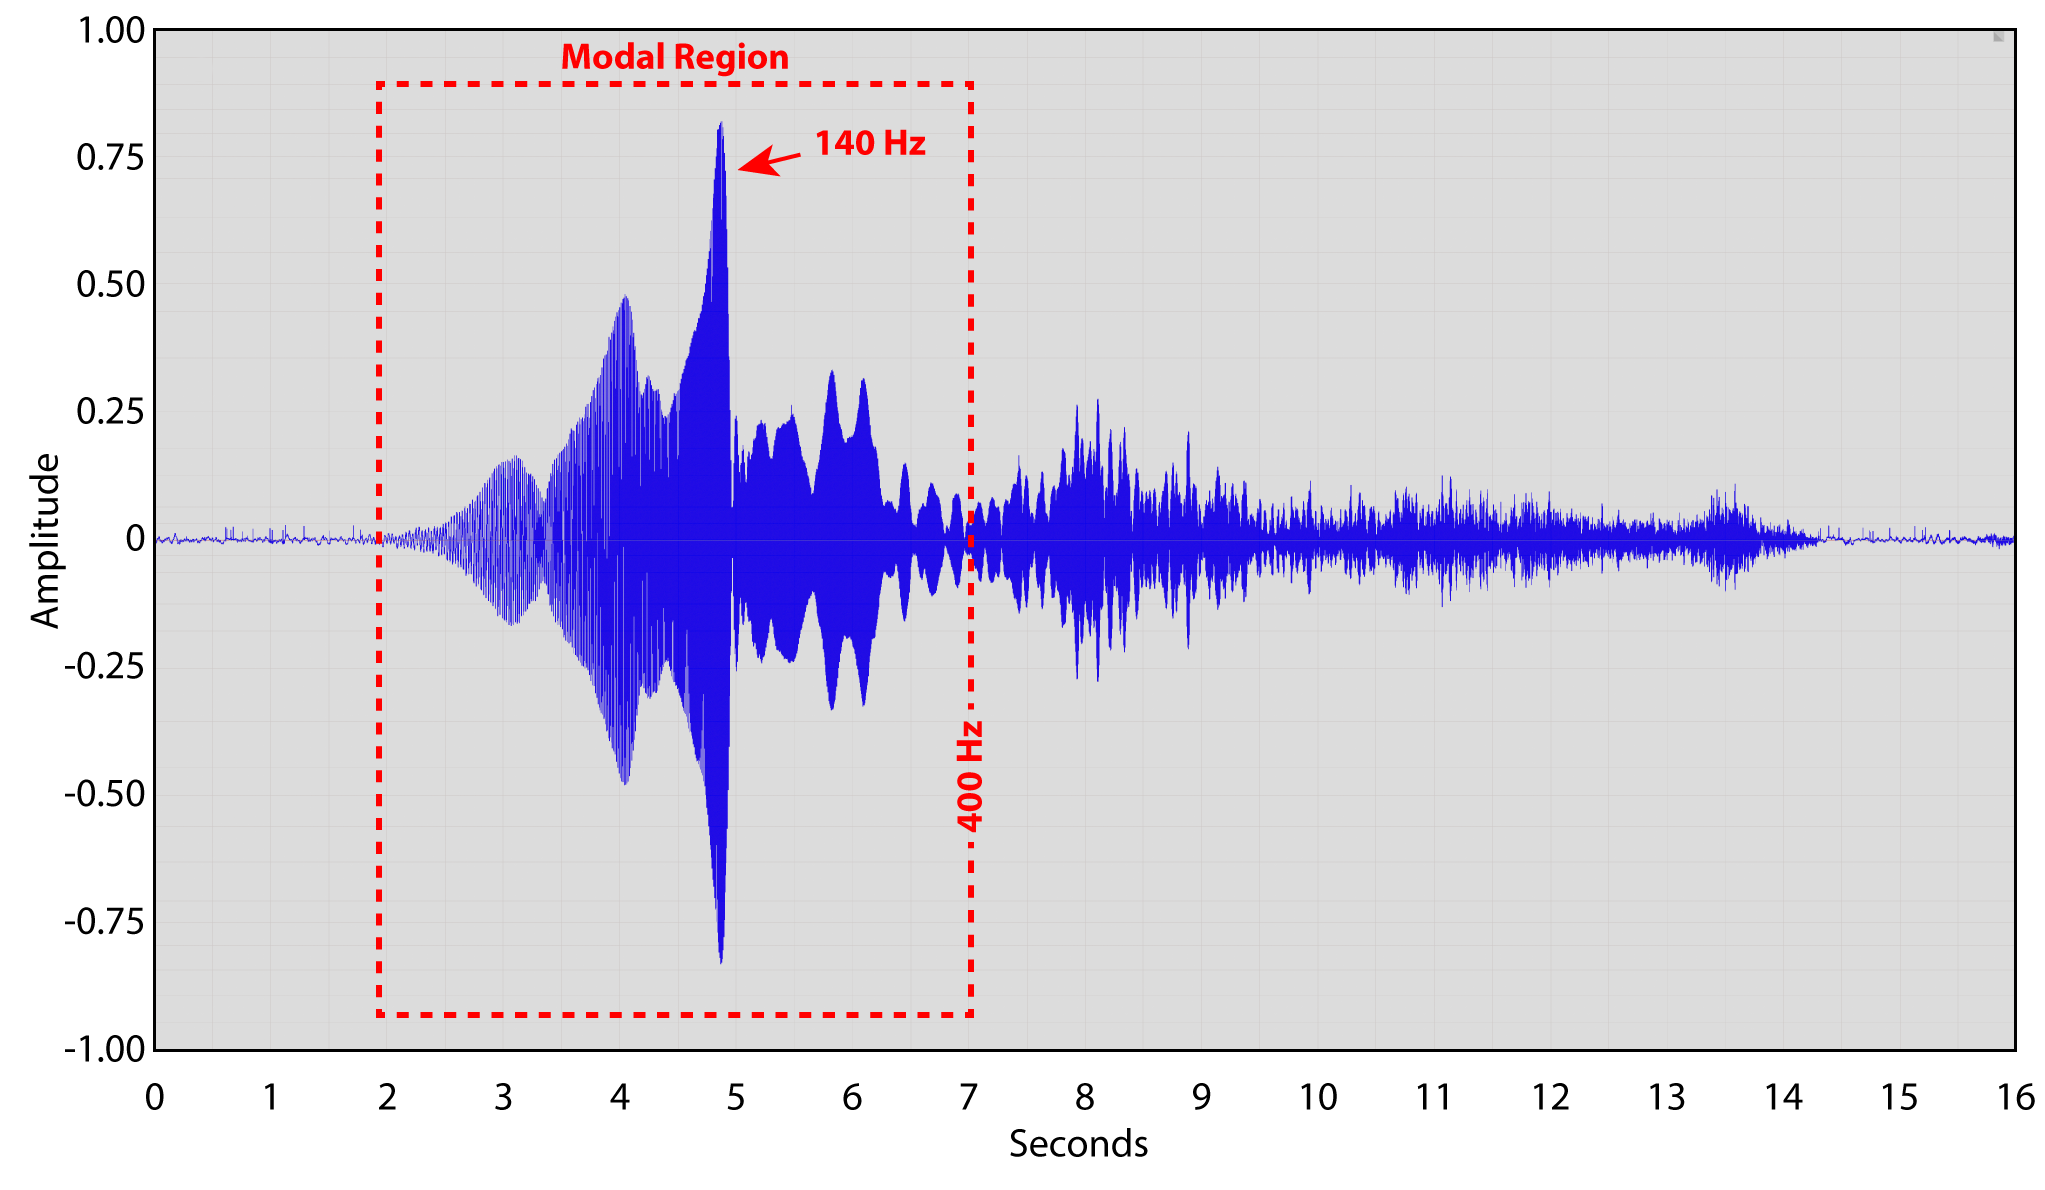 Figure 2 - A 14-sec log sweep recording at the microphone position. This was used to produce a room impulse response for further analysis.